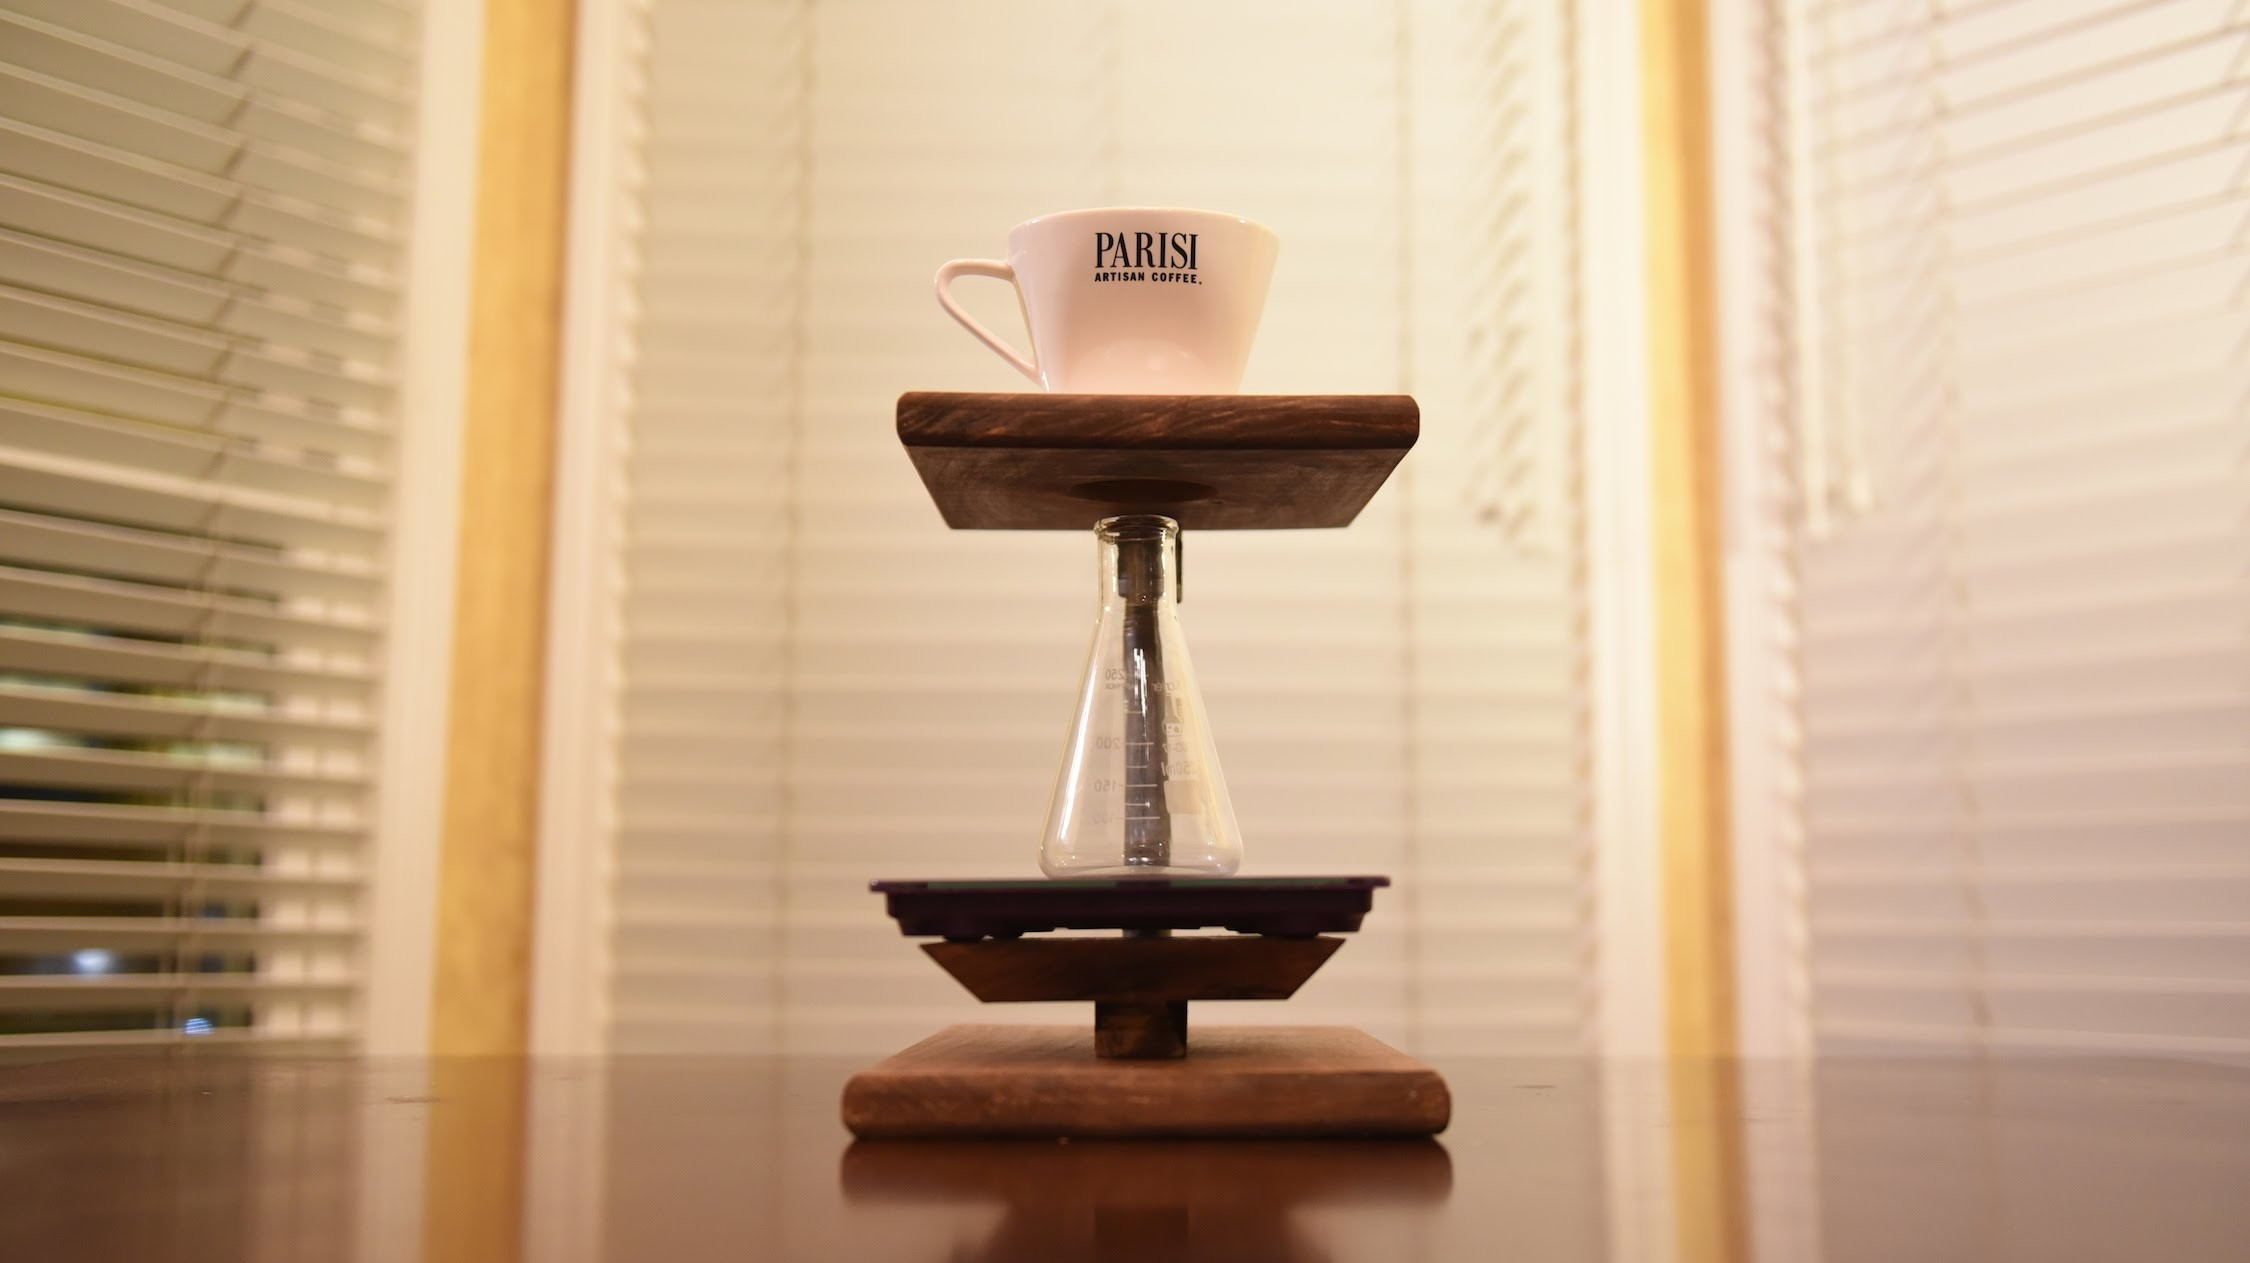 DIY: How To Make A Pour Over Coffee Stand